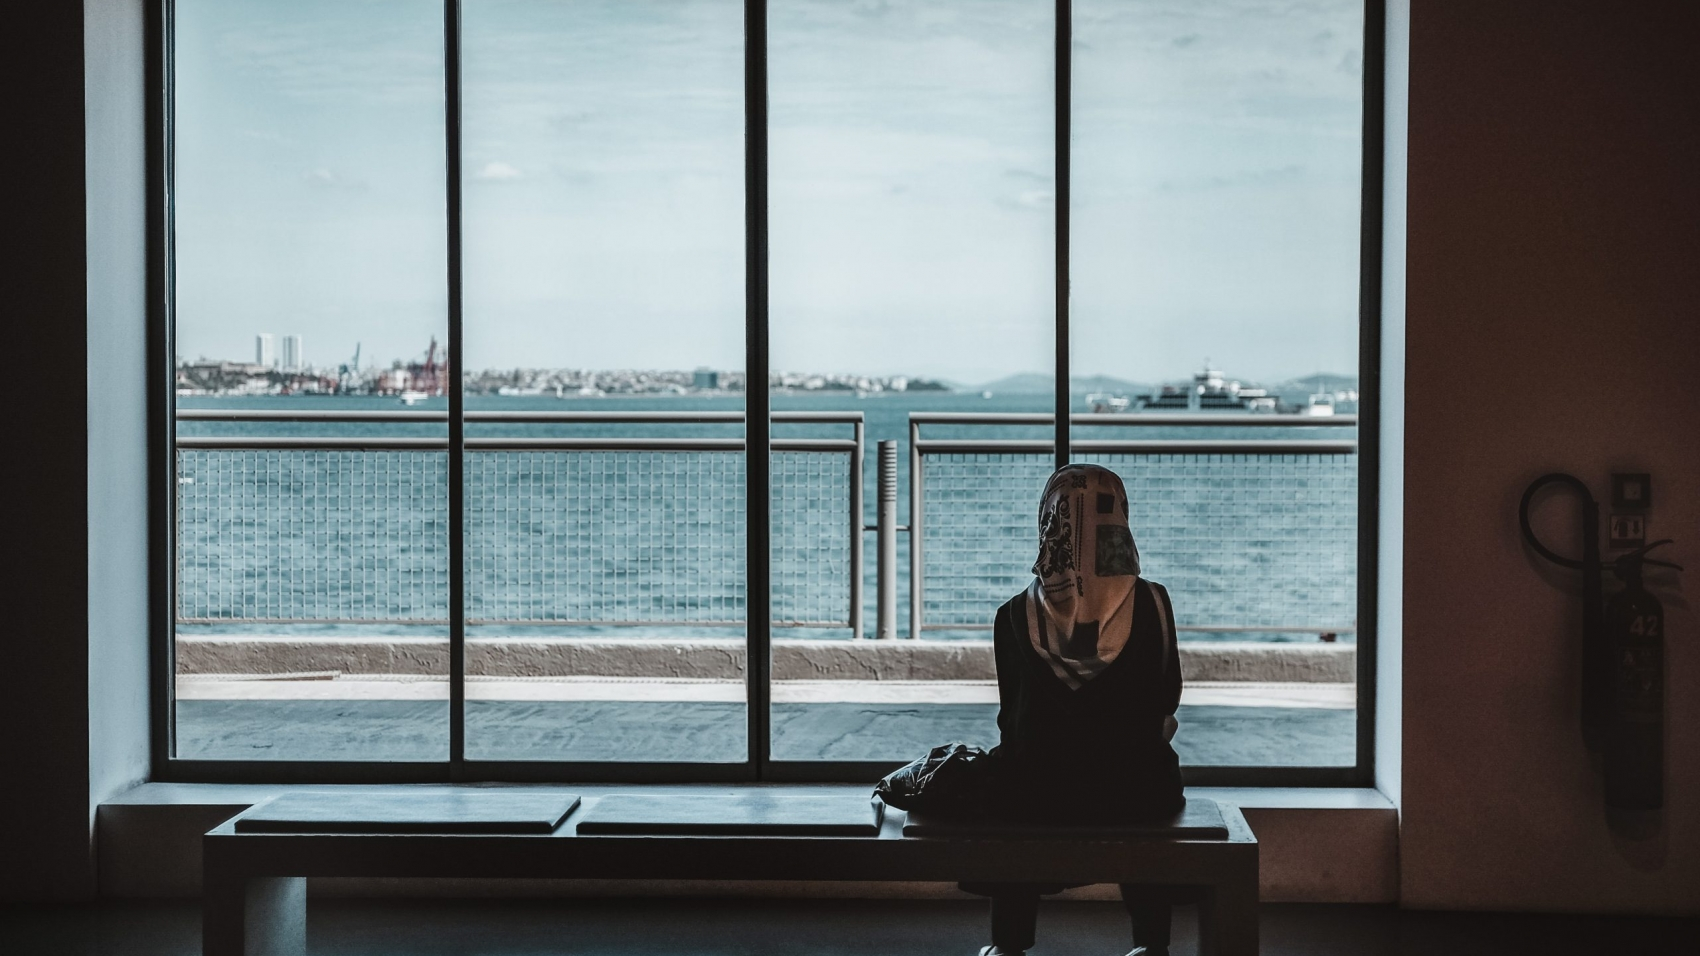 A woman sits with her back to us, staring through a window at the sea. She is alone in grief.